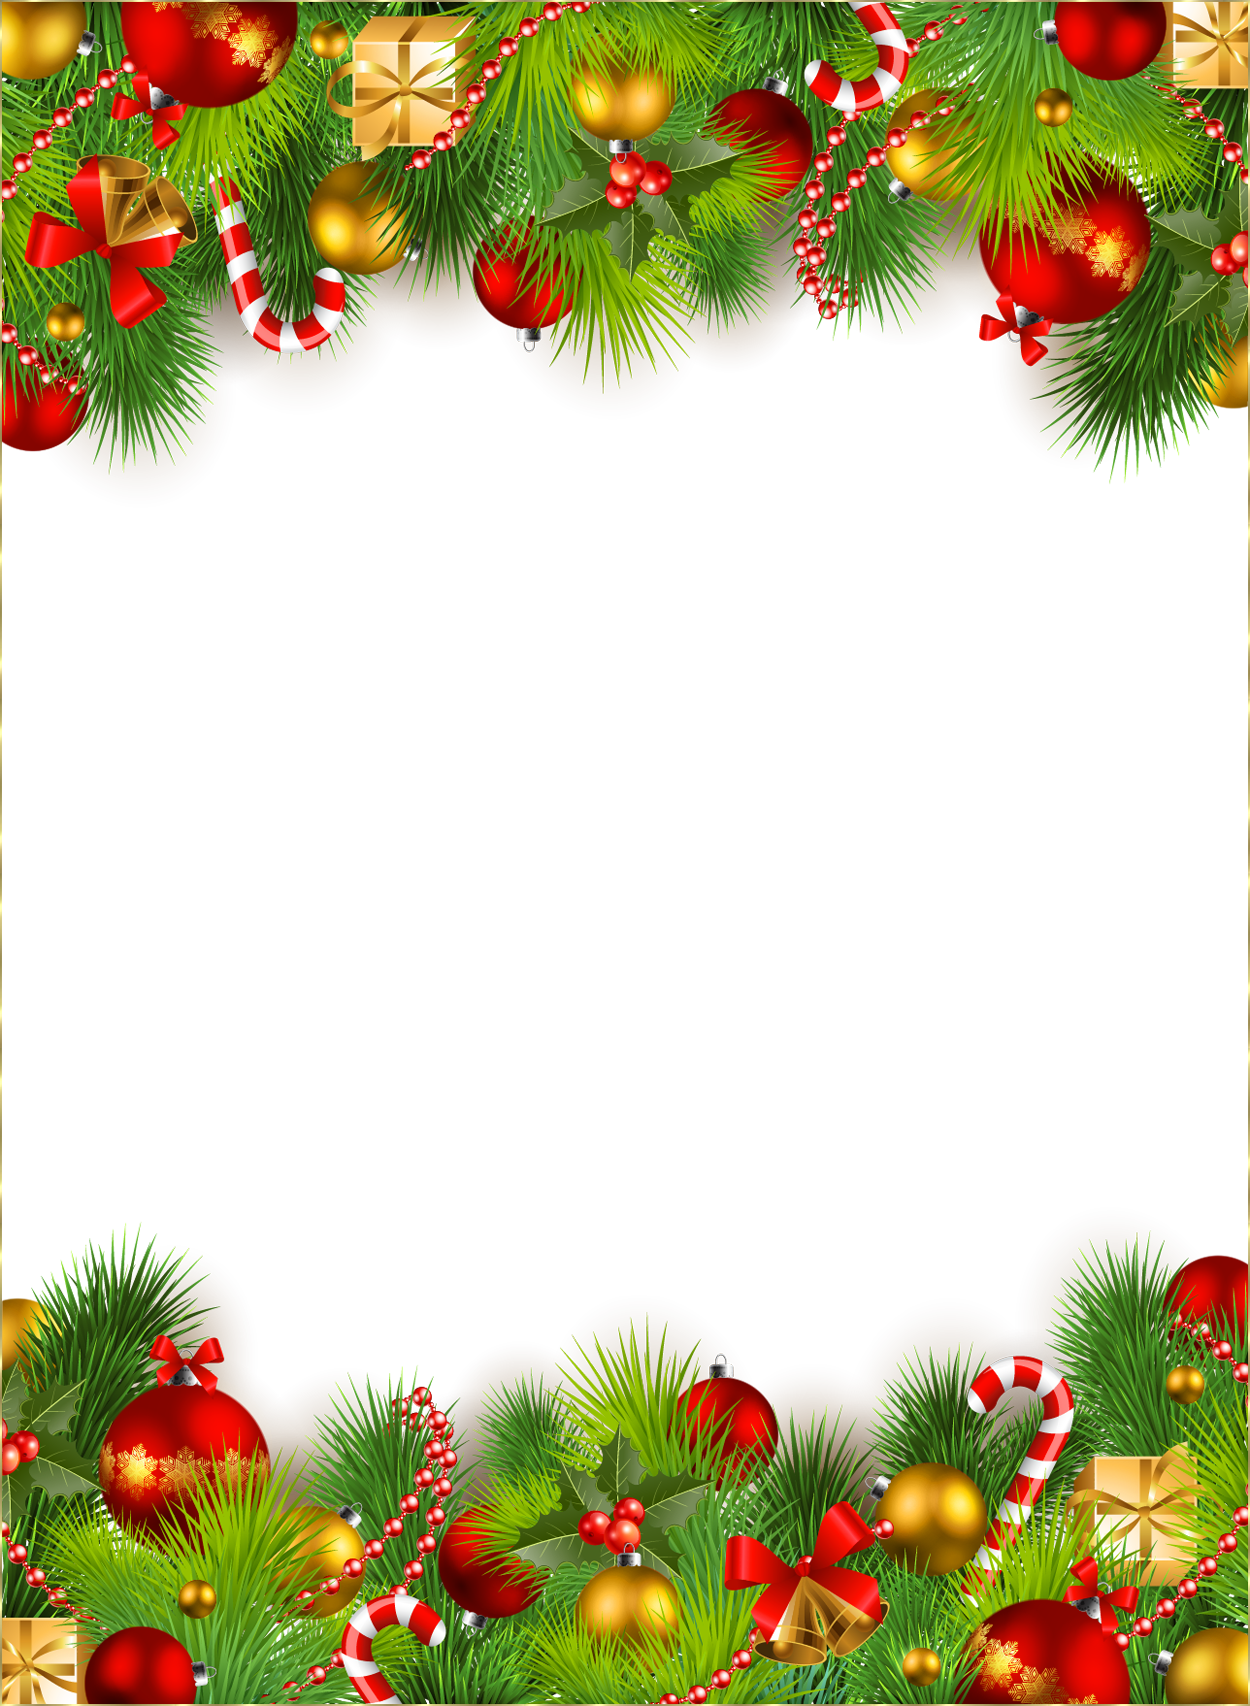 Christmas Backgrounds Png.Christmas Frame Png 35327 Free Icons And Png Backgrounds